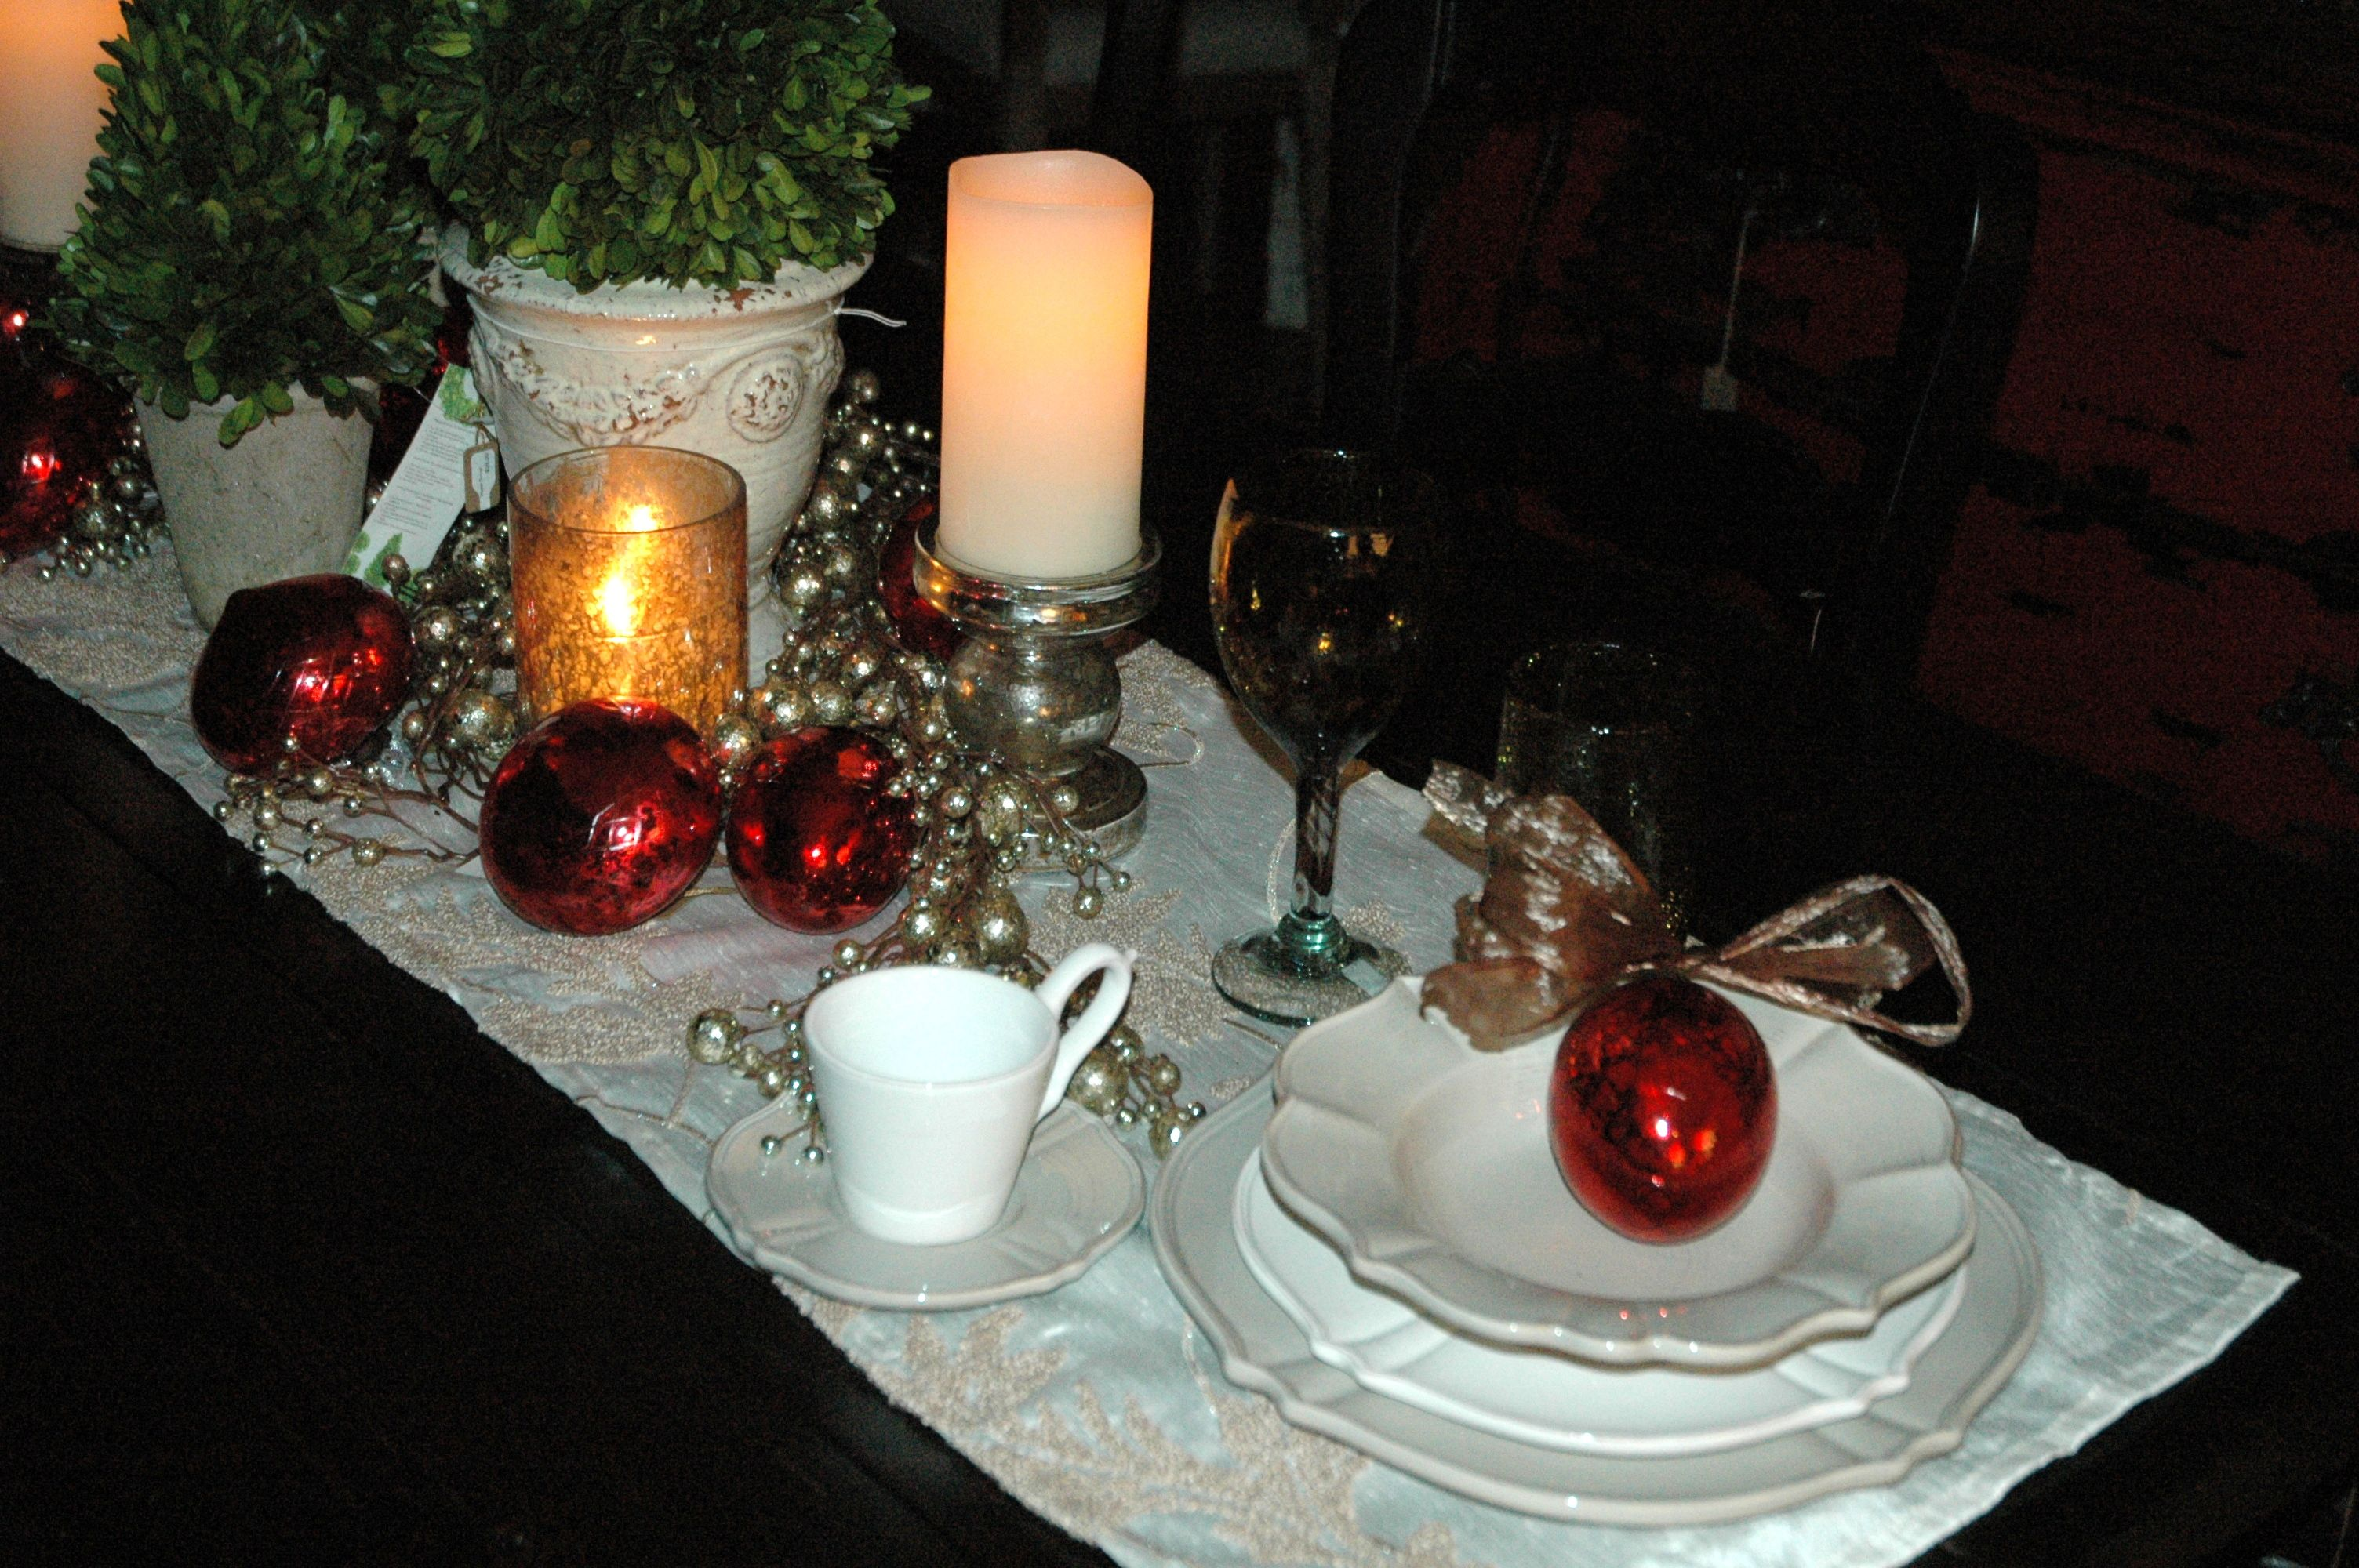 Mercury glass candle holders and ornaments in silver and red